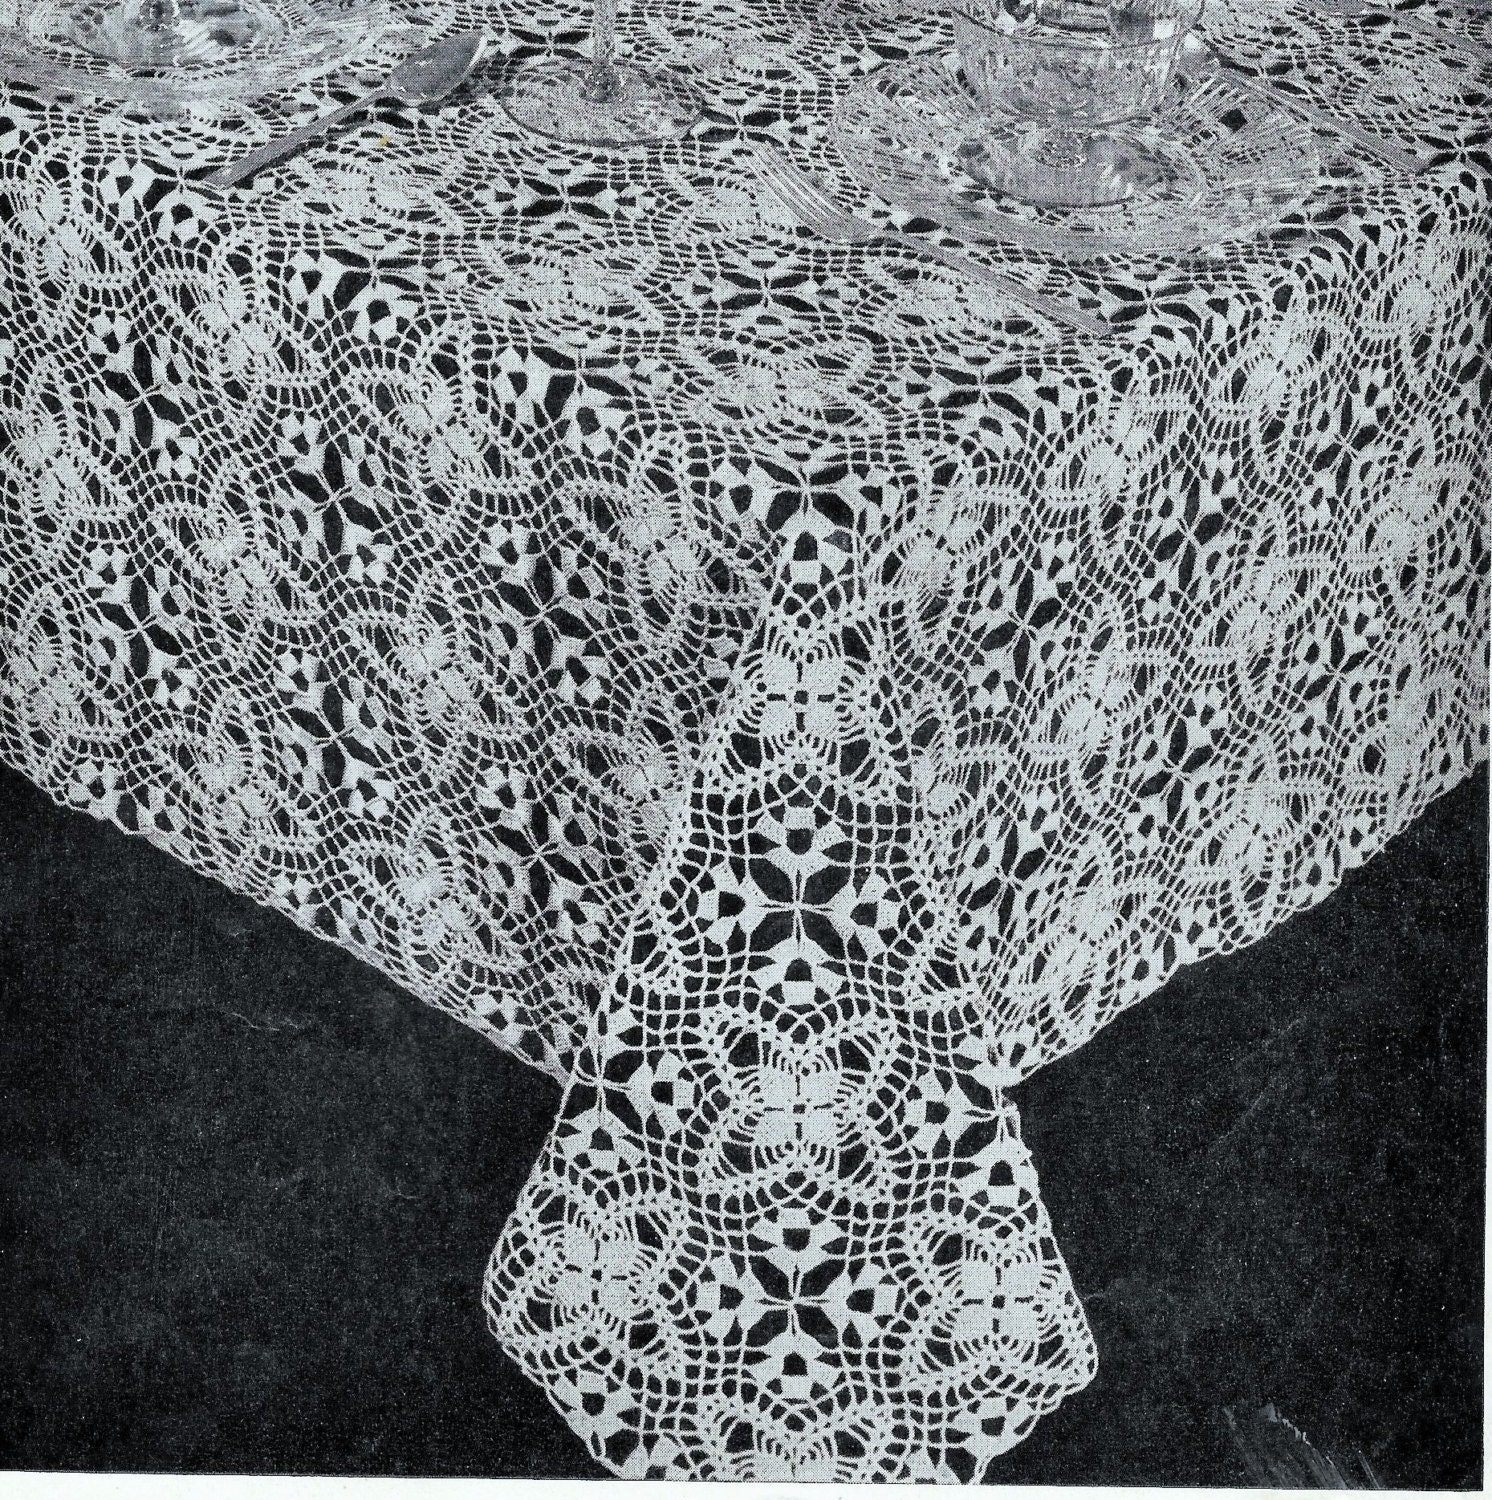 Crochet tablecloth pattern square motif lace crochet tablecloth this is a digital file bankloansurffo Gallery